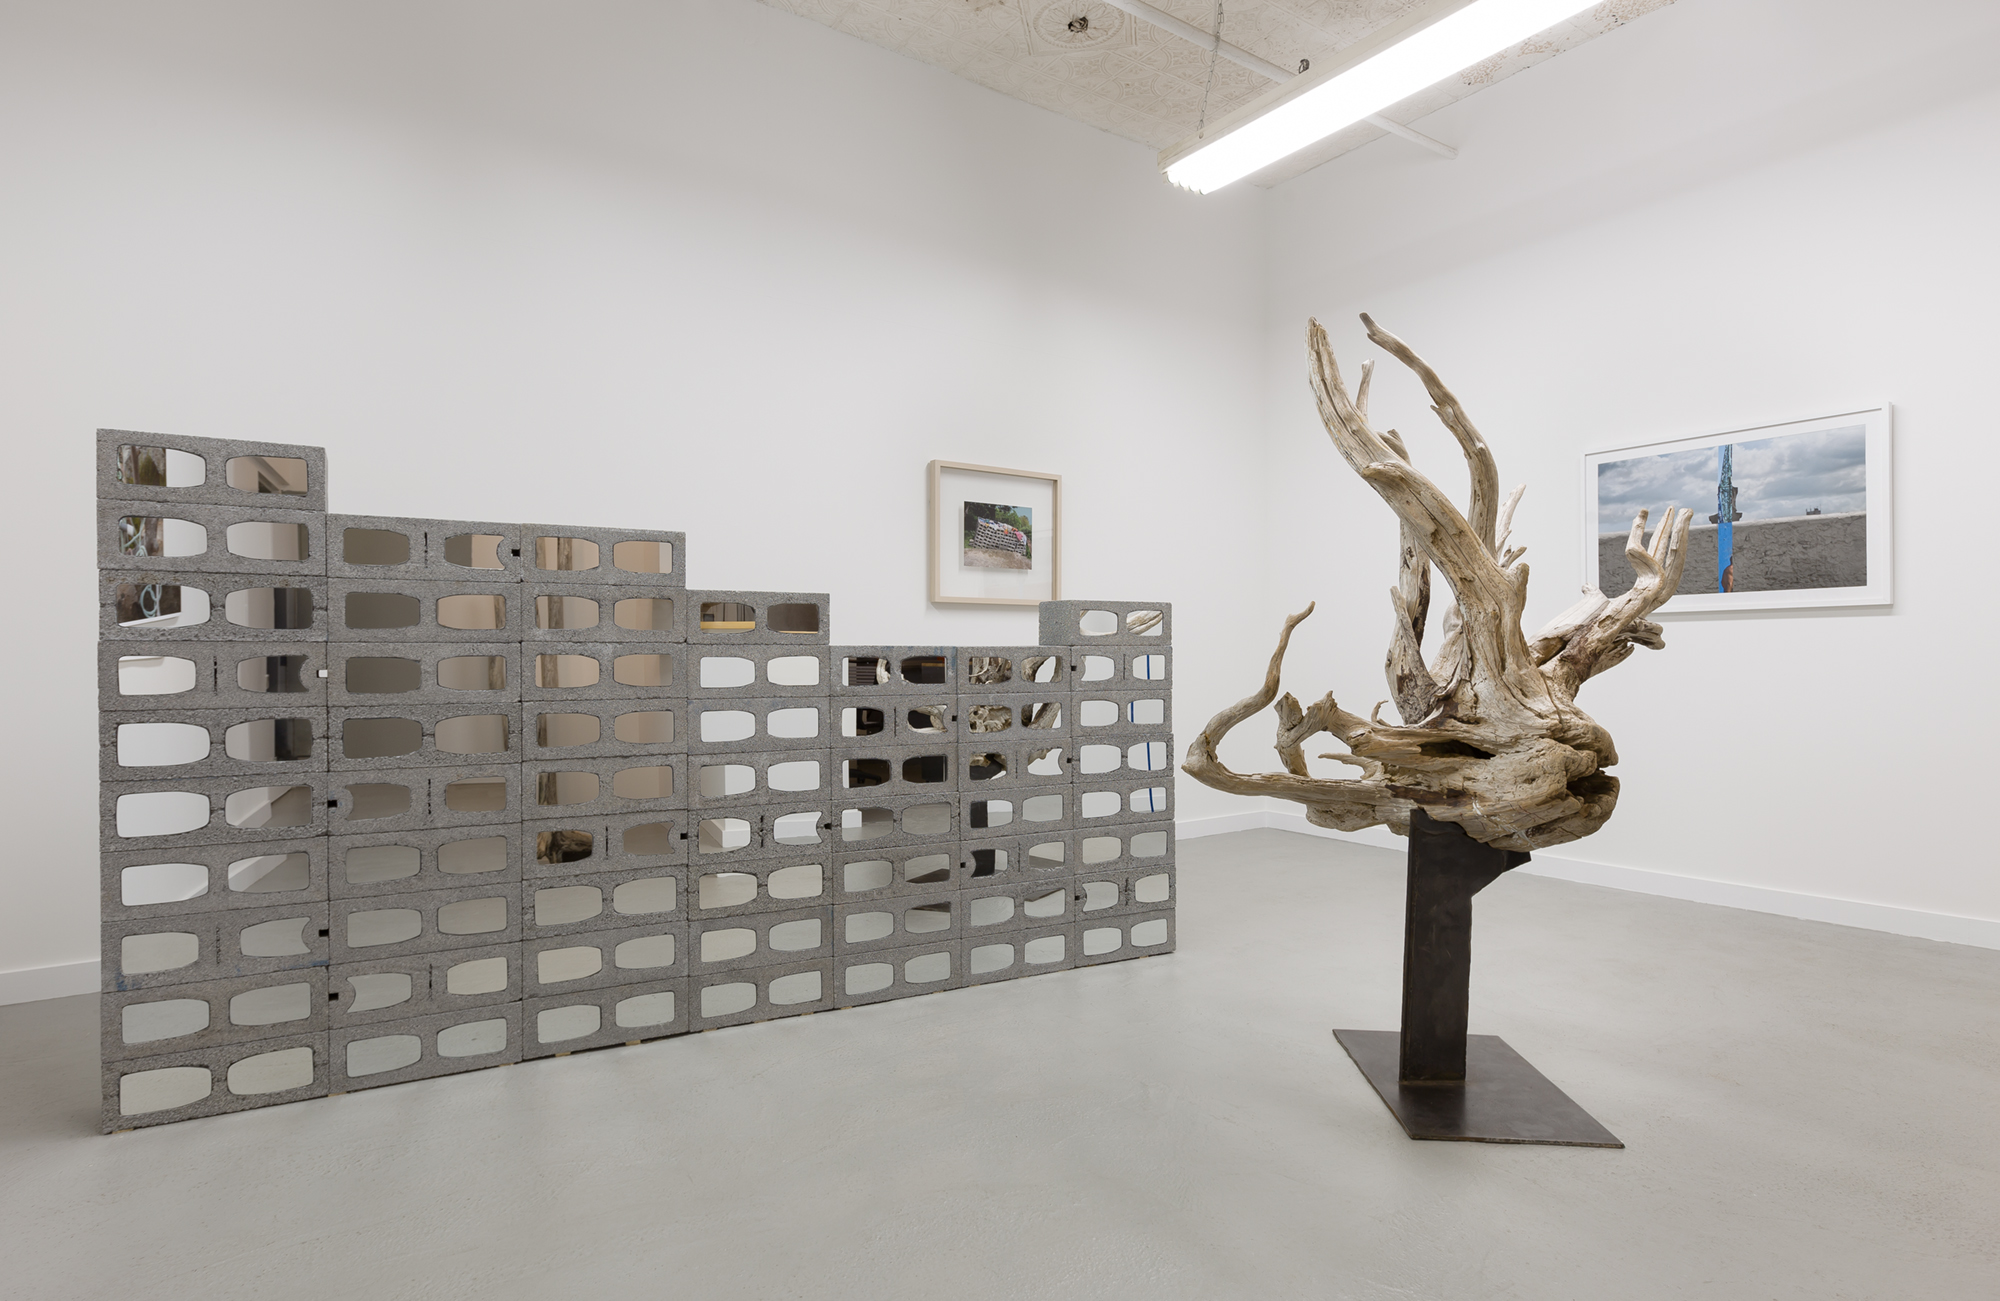 Karyn Olivier, Cinderblock (in foreground--Photo credit Etienne Frossard), concrete blocks and mirrors, 60 h x 108 w x 8 d inches; Trawl, 2015, manipulated driftwood with steel structure, 75 h x 52 w x30 d inches